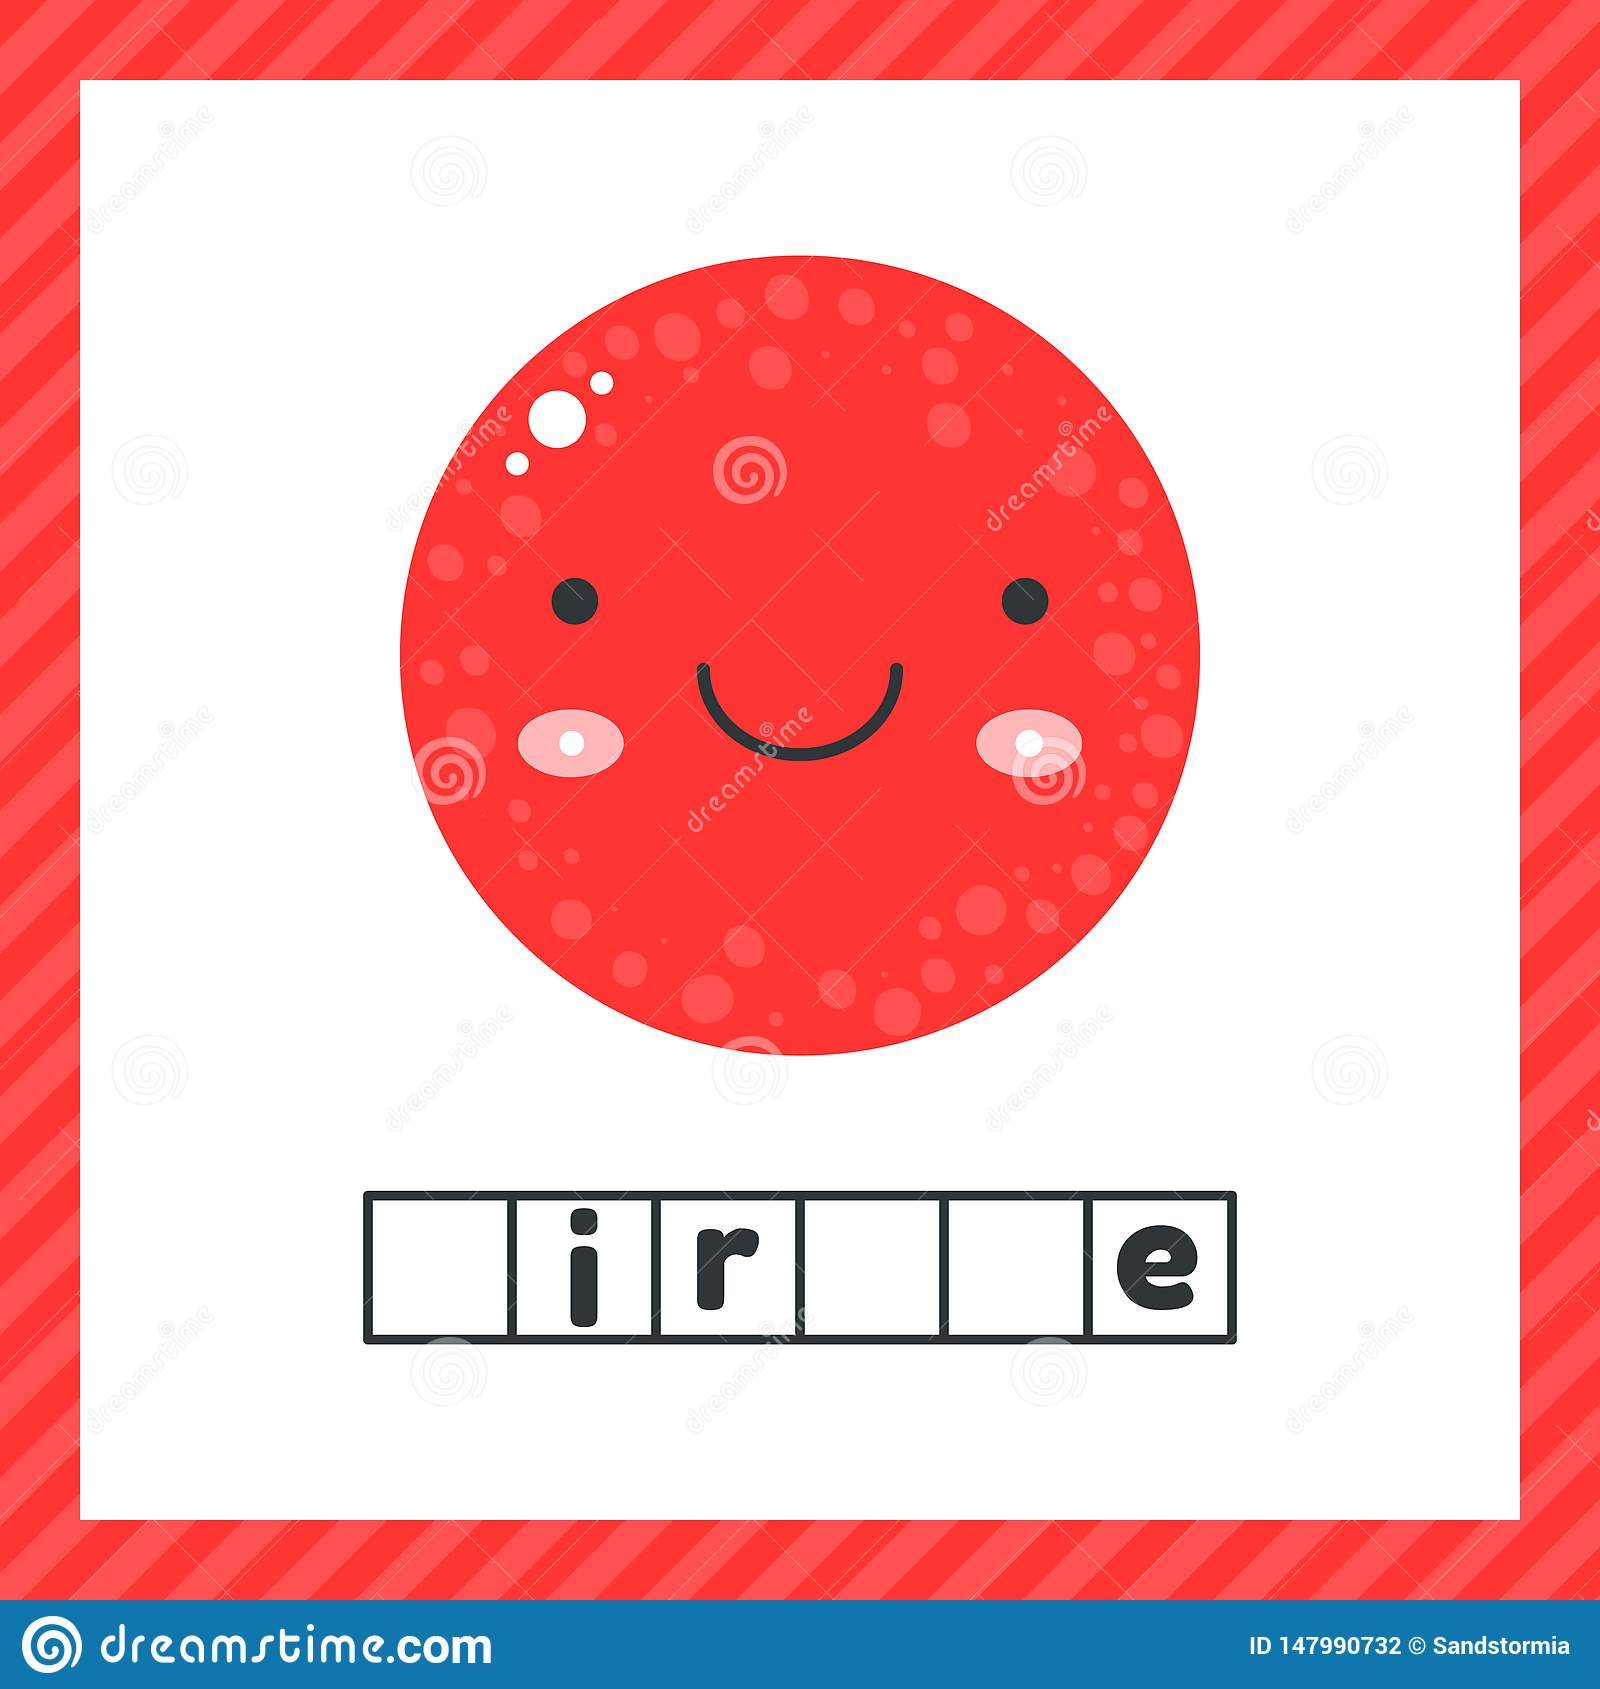 Cute Geometric Figures For Kids Red Shape Circle Isolated